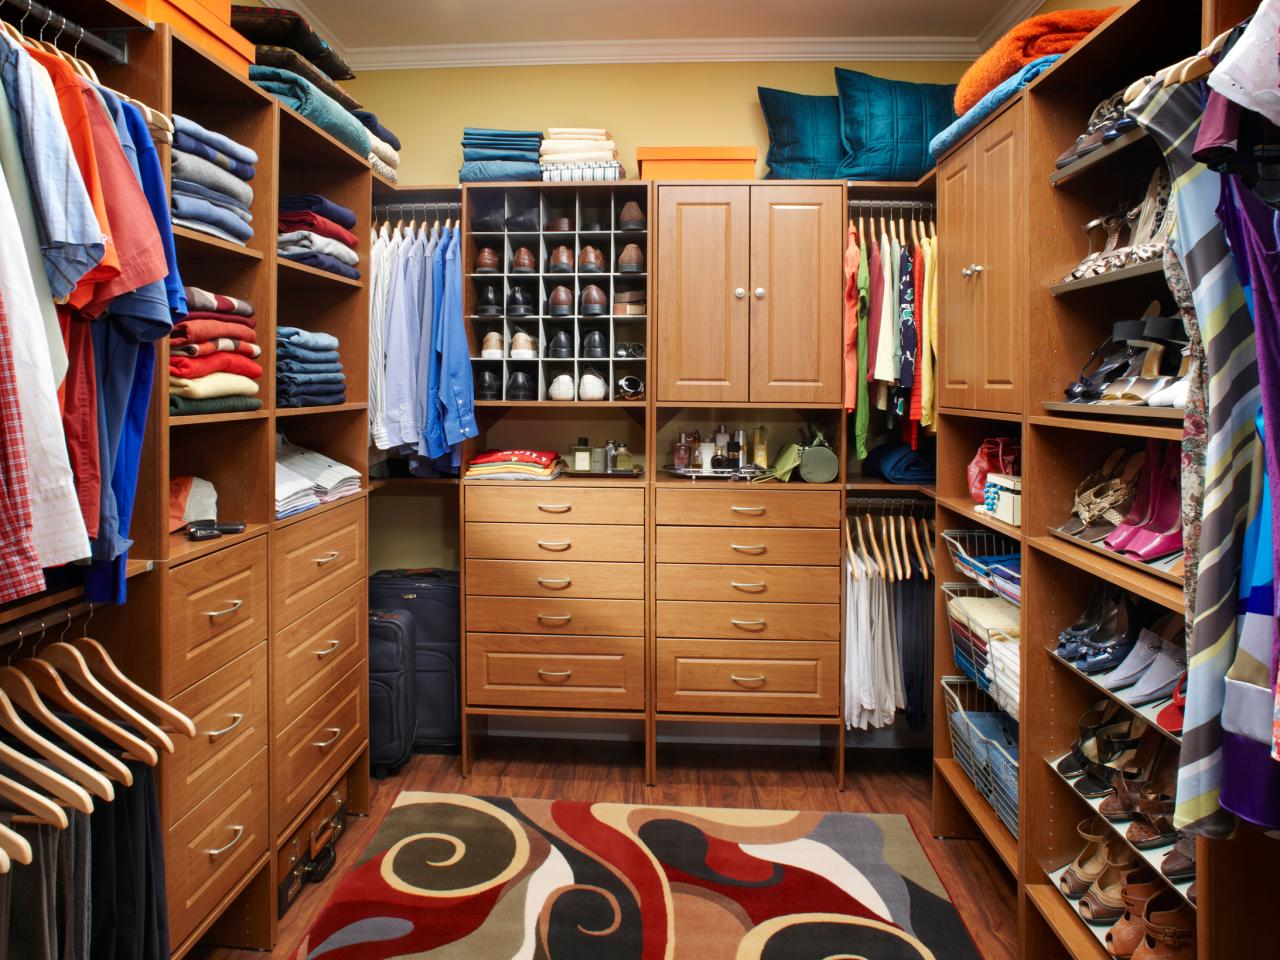 Consider Placing Hanging Racks Or Hooks On The Wall For Simple Storage Of  Belts, Ties, Kitchen Cooking Pans Or A Broom, Depending On The Room Of The  House ...